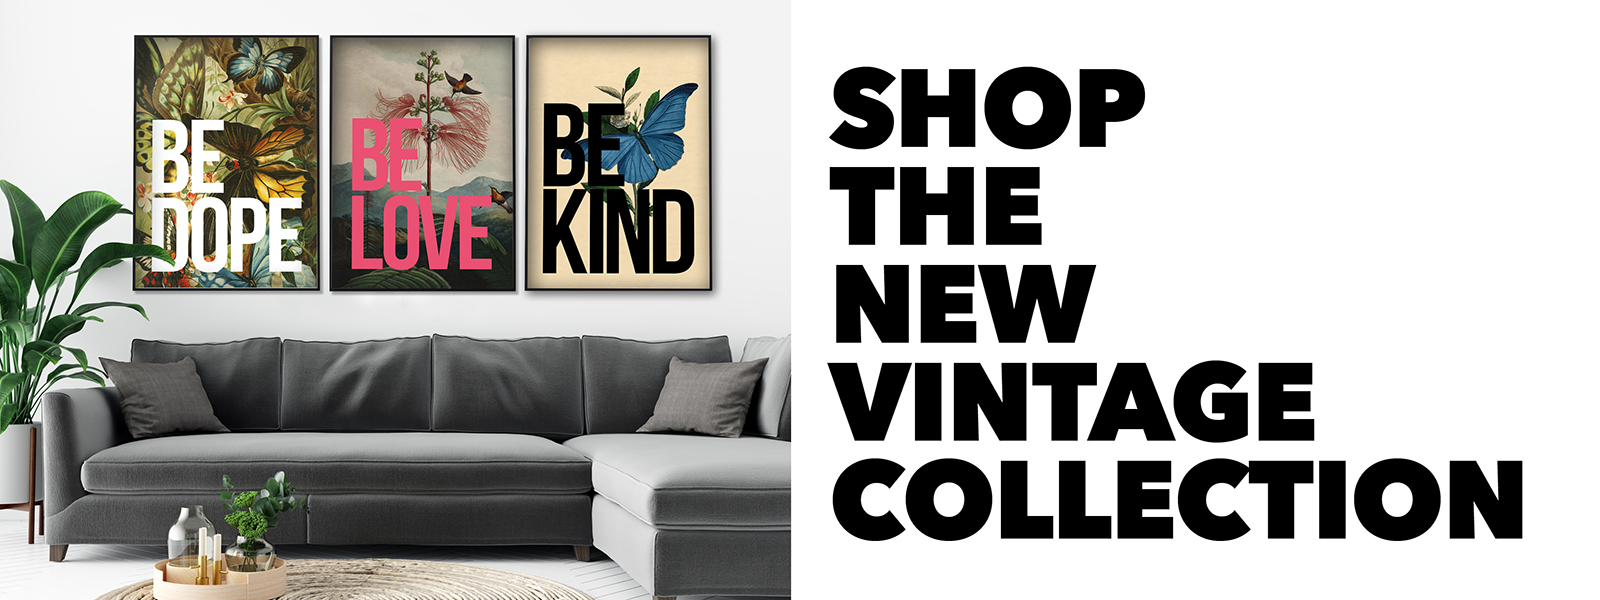 Gallery Wall Inspiration Vintage Themed Nanas of Anarchy typography Posters